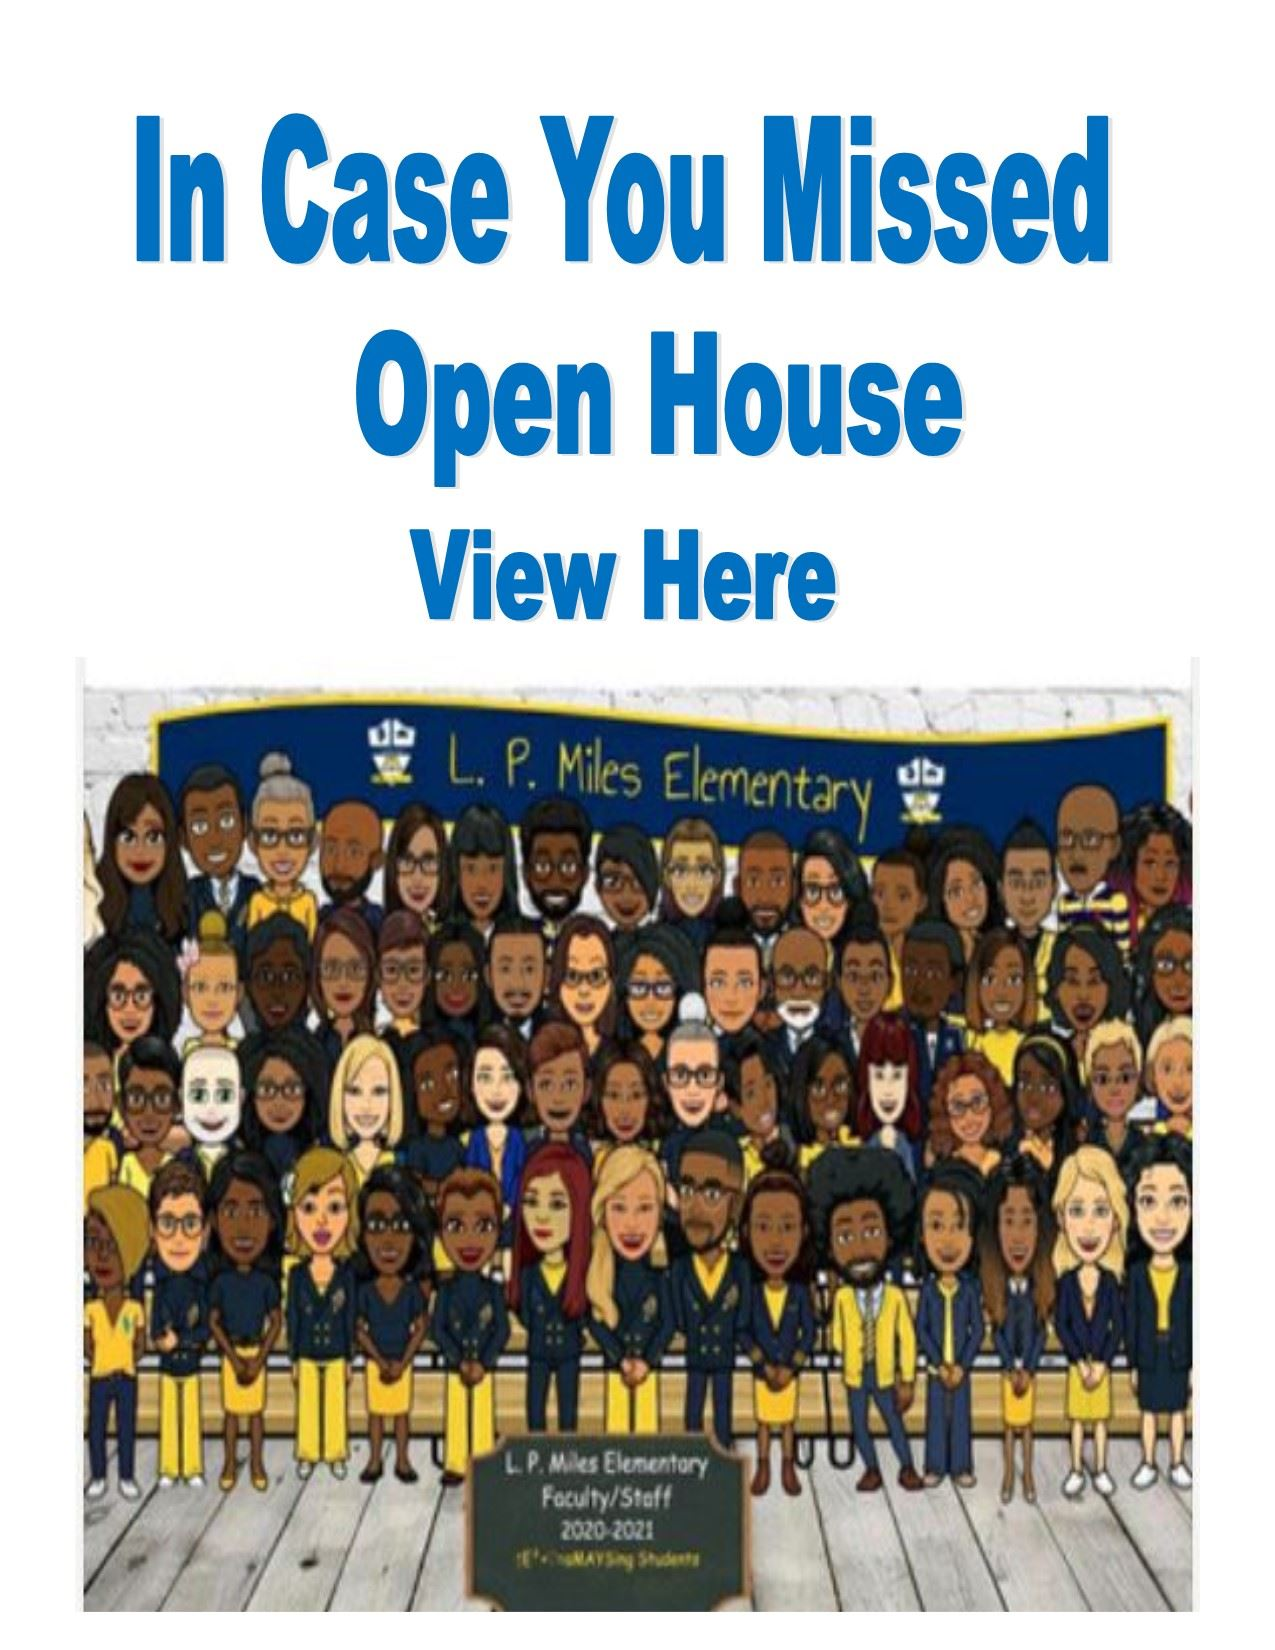 In Case You Missed our Virtual Open House